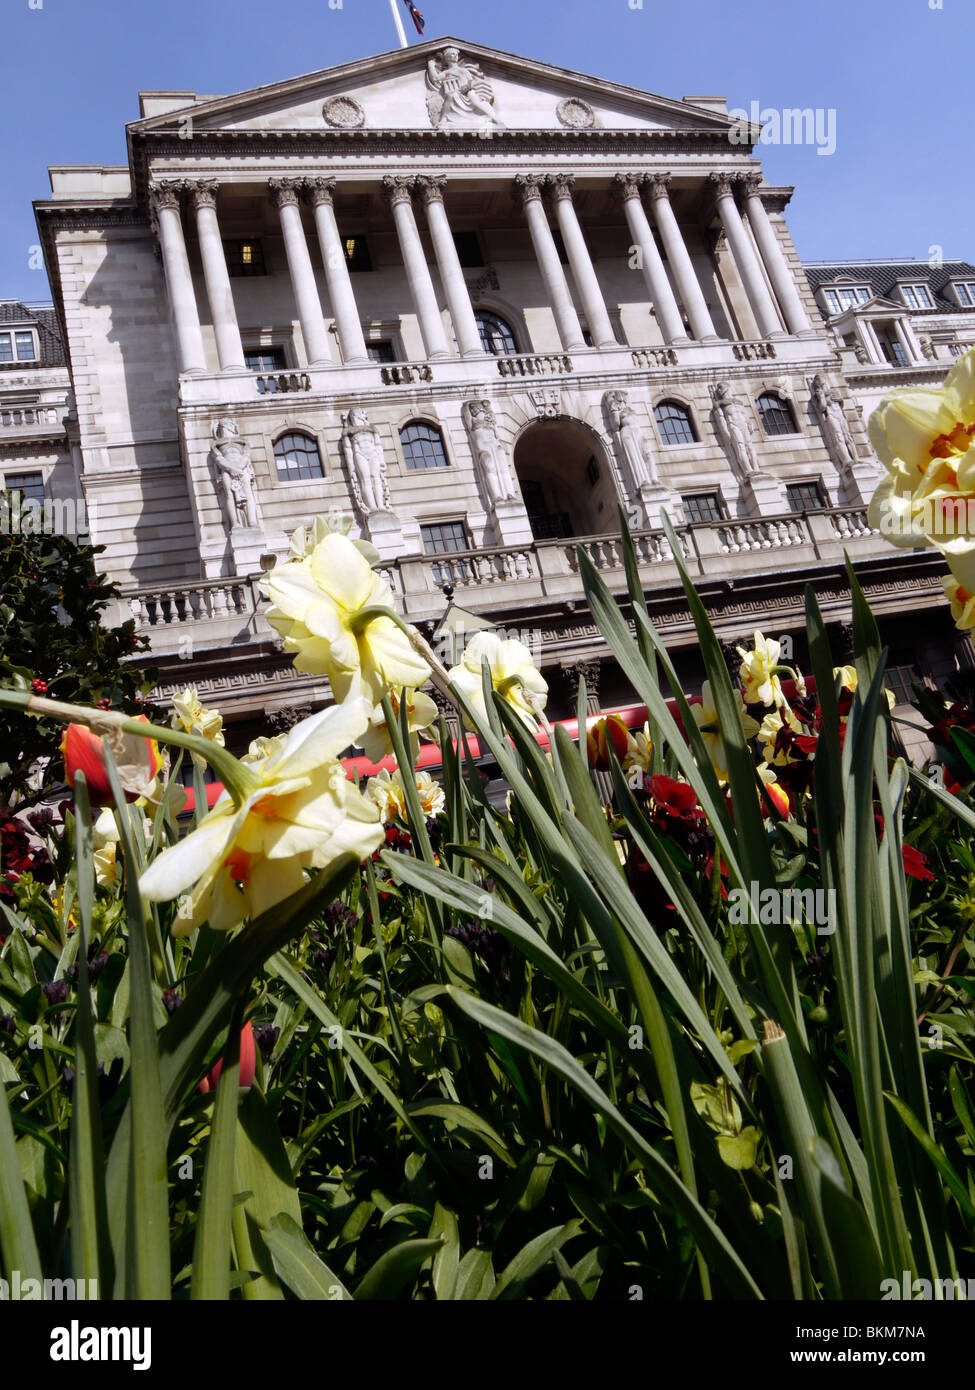 bank of england, with flower bed depicting green shoots of recovery, growth - Stock Image